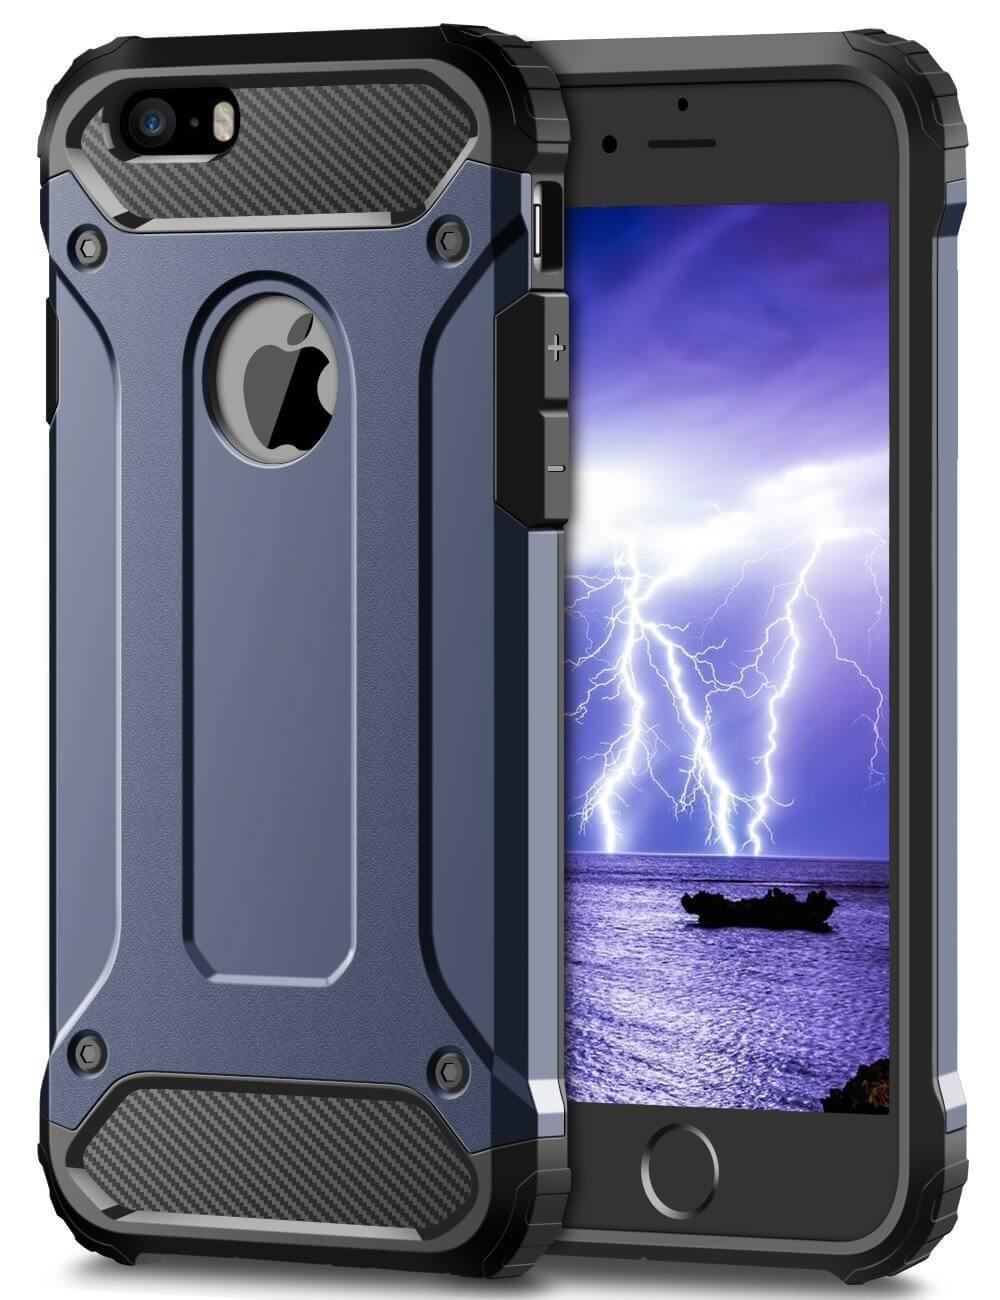 Hybrid-Armor-Shockproof-Rugged-Bumper-Case-For-Apple-iPhone-10-X-8-7-Plus-6s-5s miniature 65